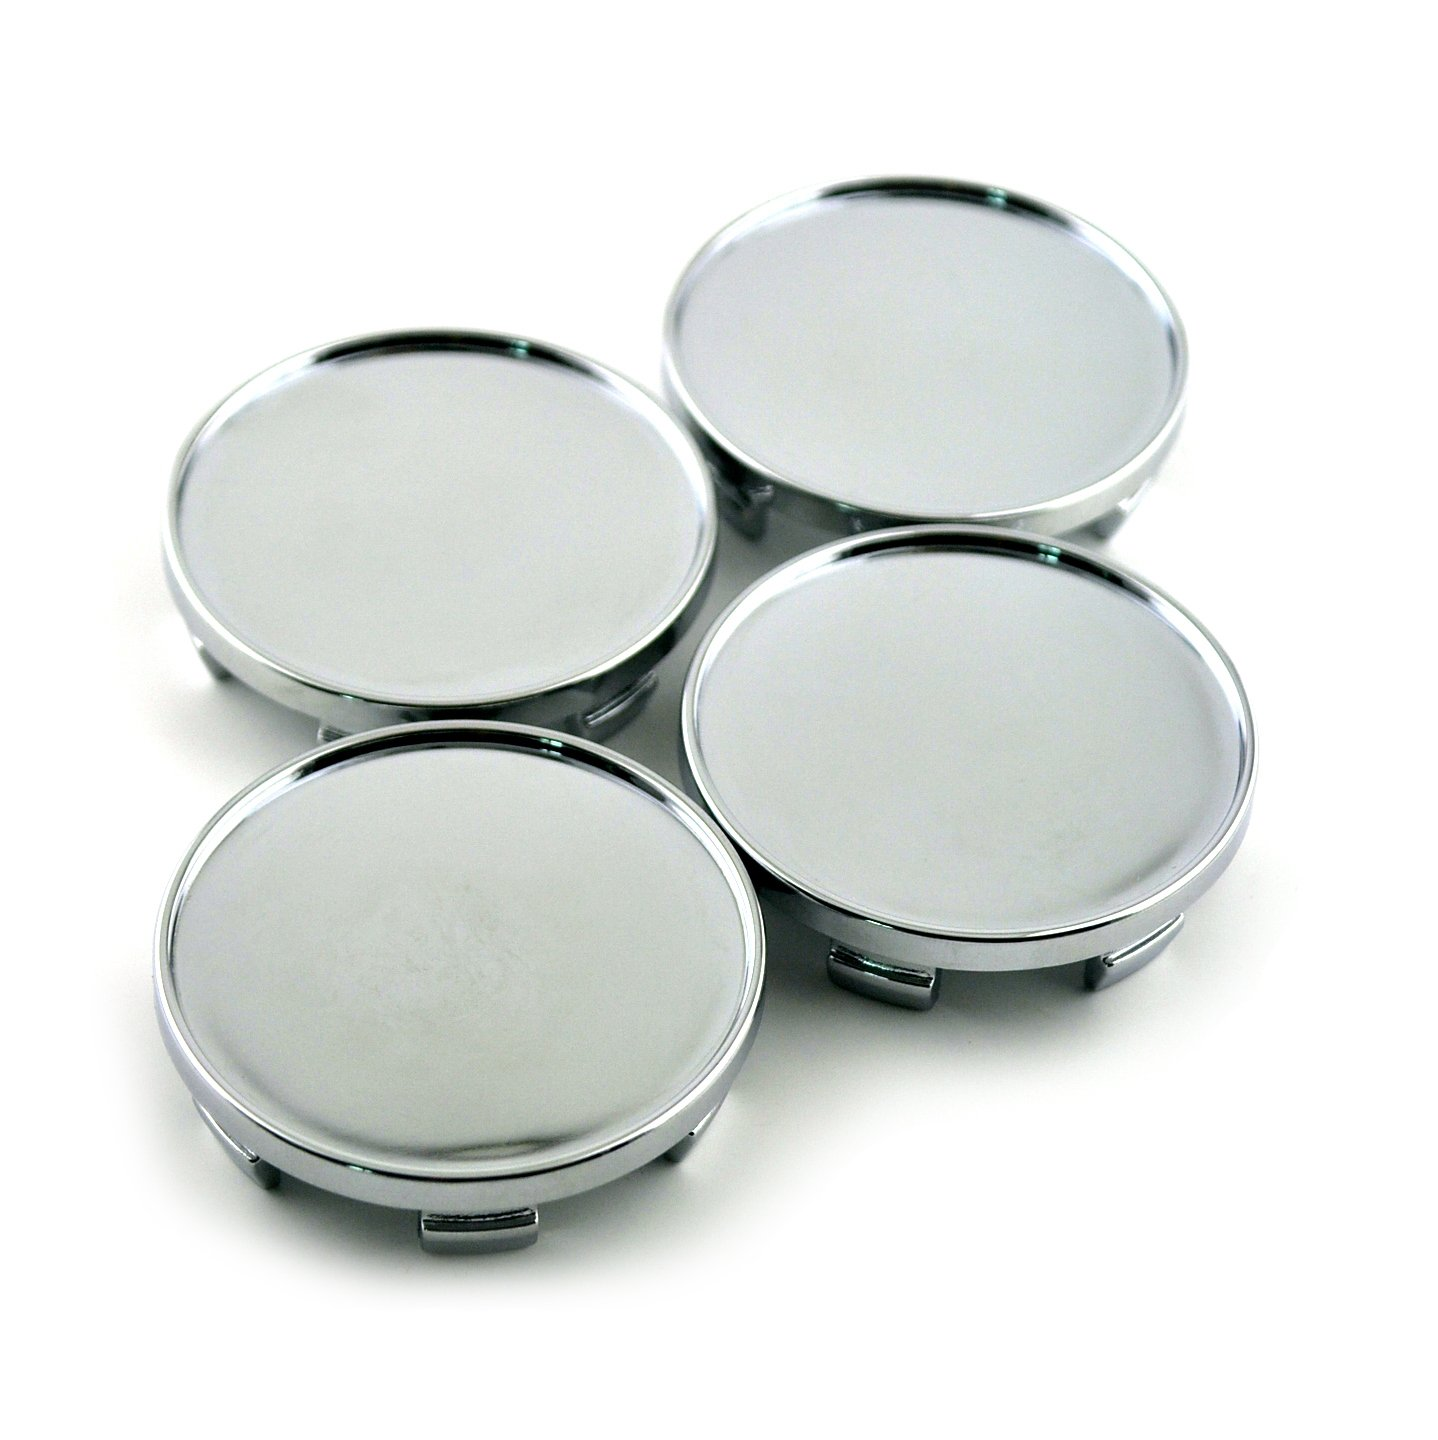 54mm Silver ABS Car Wheel Center Hub Caps Set of 4 by General (Image #1)